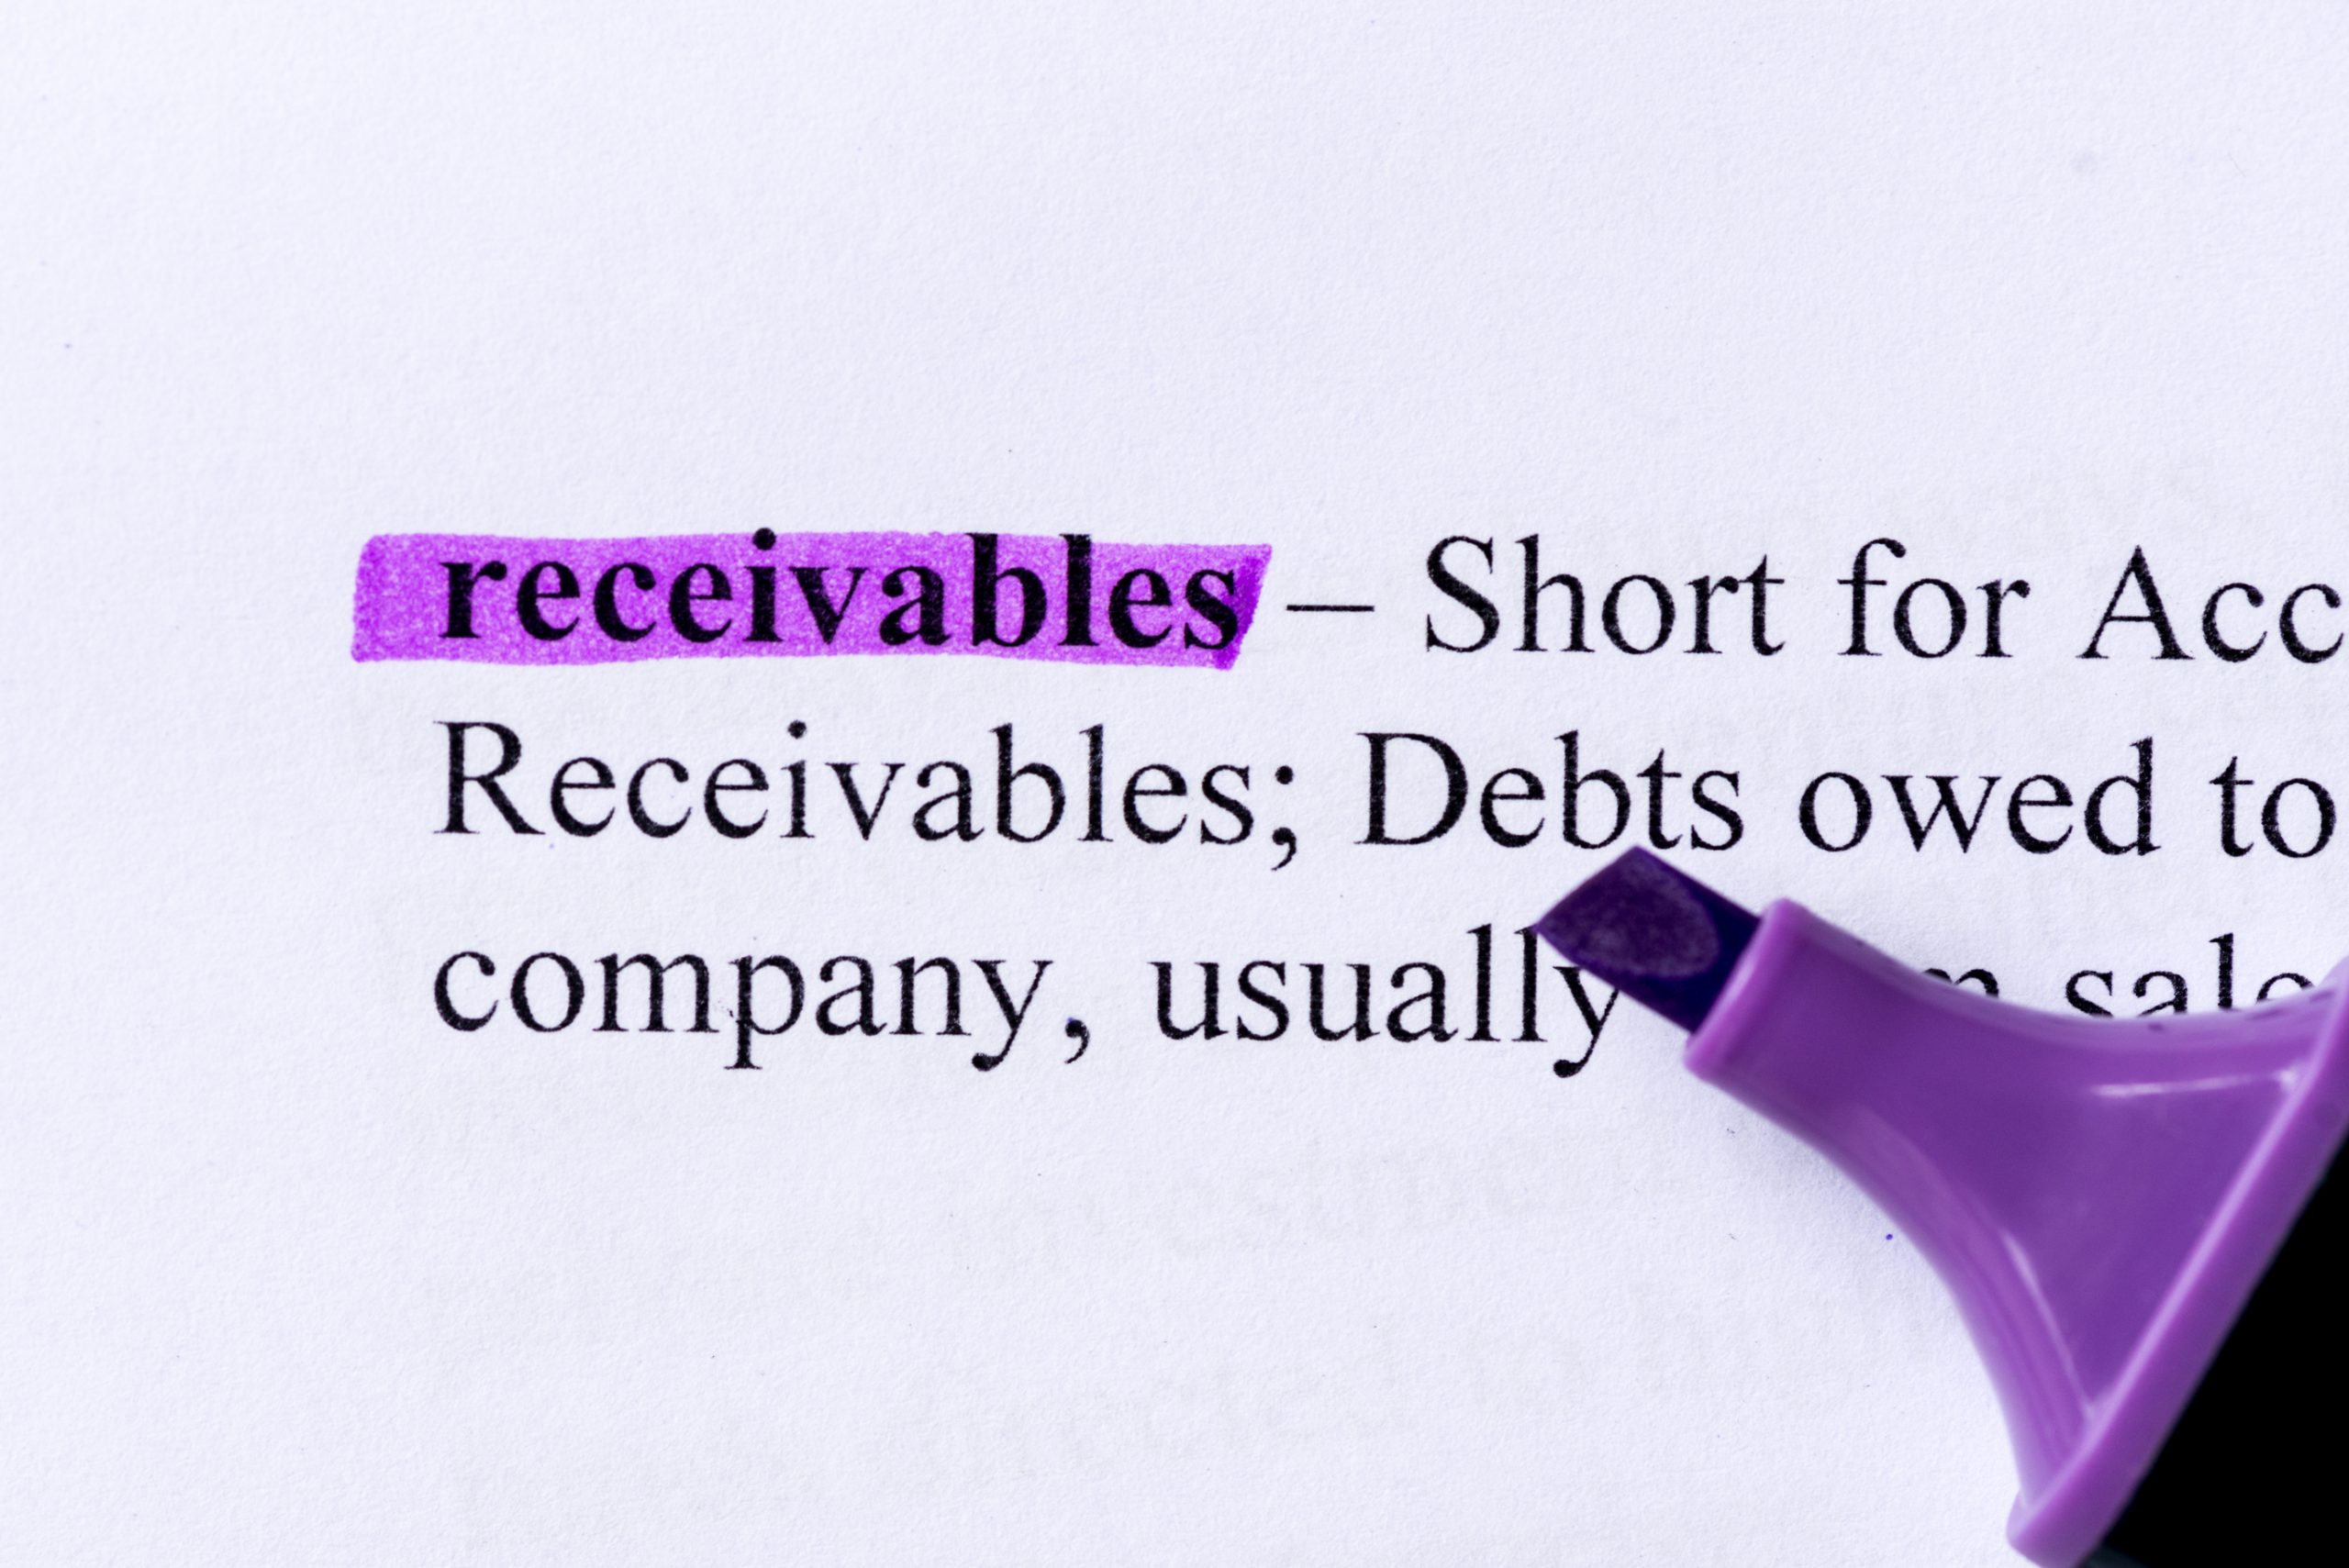 Display of Receivables definition in purple highlighter